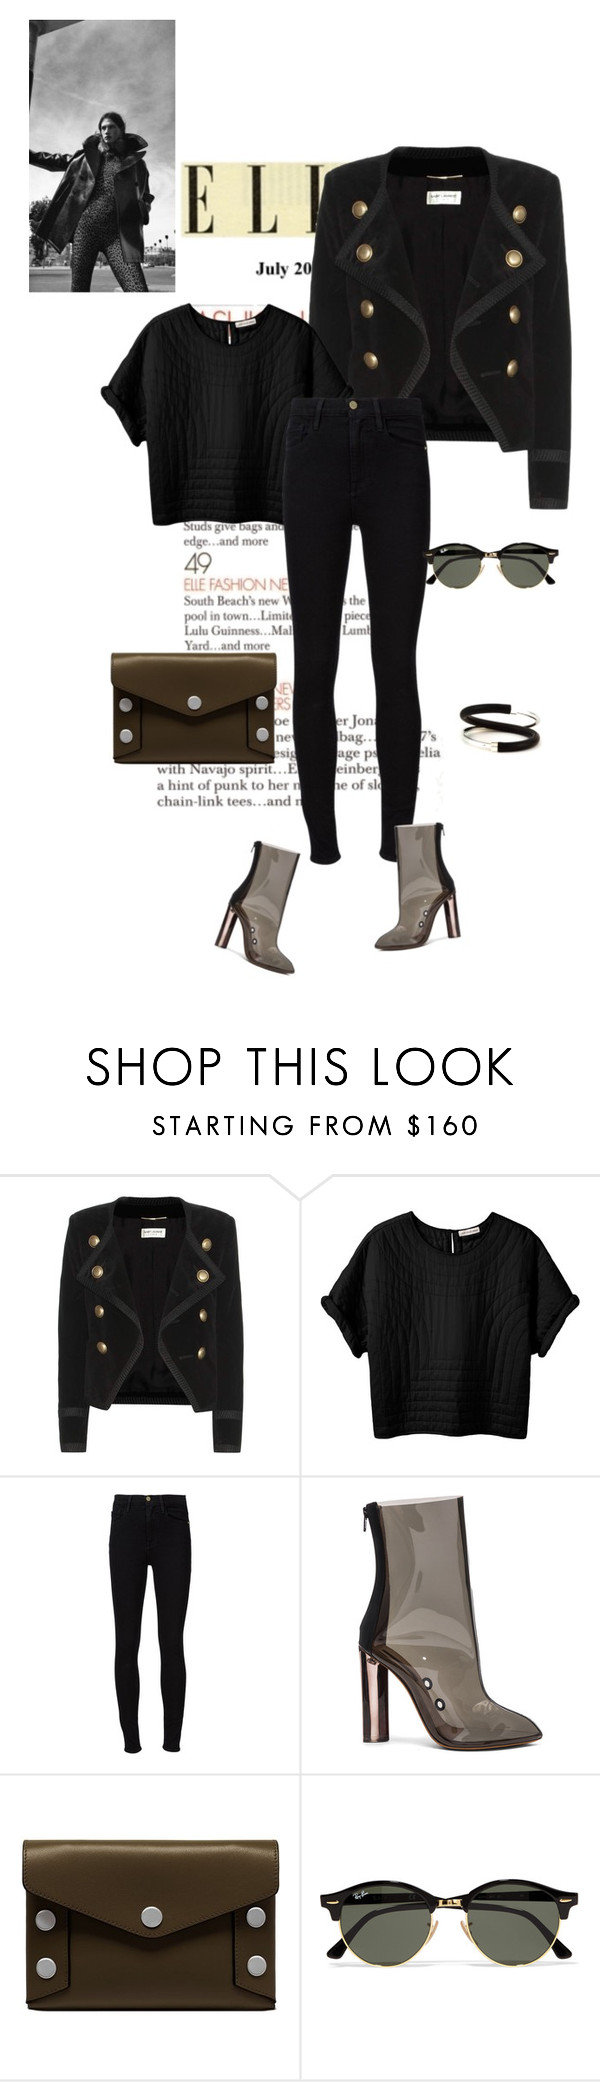 """""""#lookoftheday"""" by ketp on Polyvore featuring мода, Yves Saint Laurent, Étoile Isabel Marant, Frame, adidas, Mulberry, Ray-Ban, FAUX/real, StreetStyle и black"""